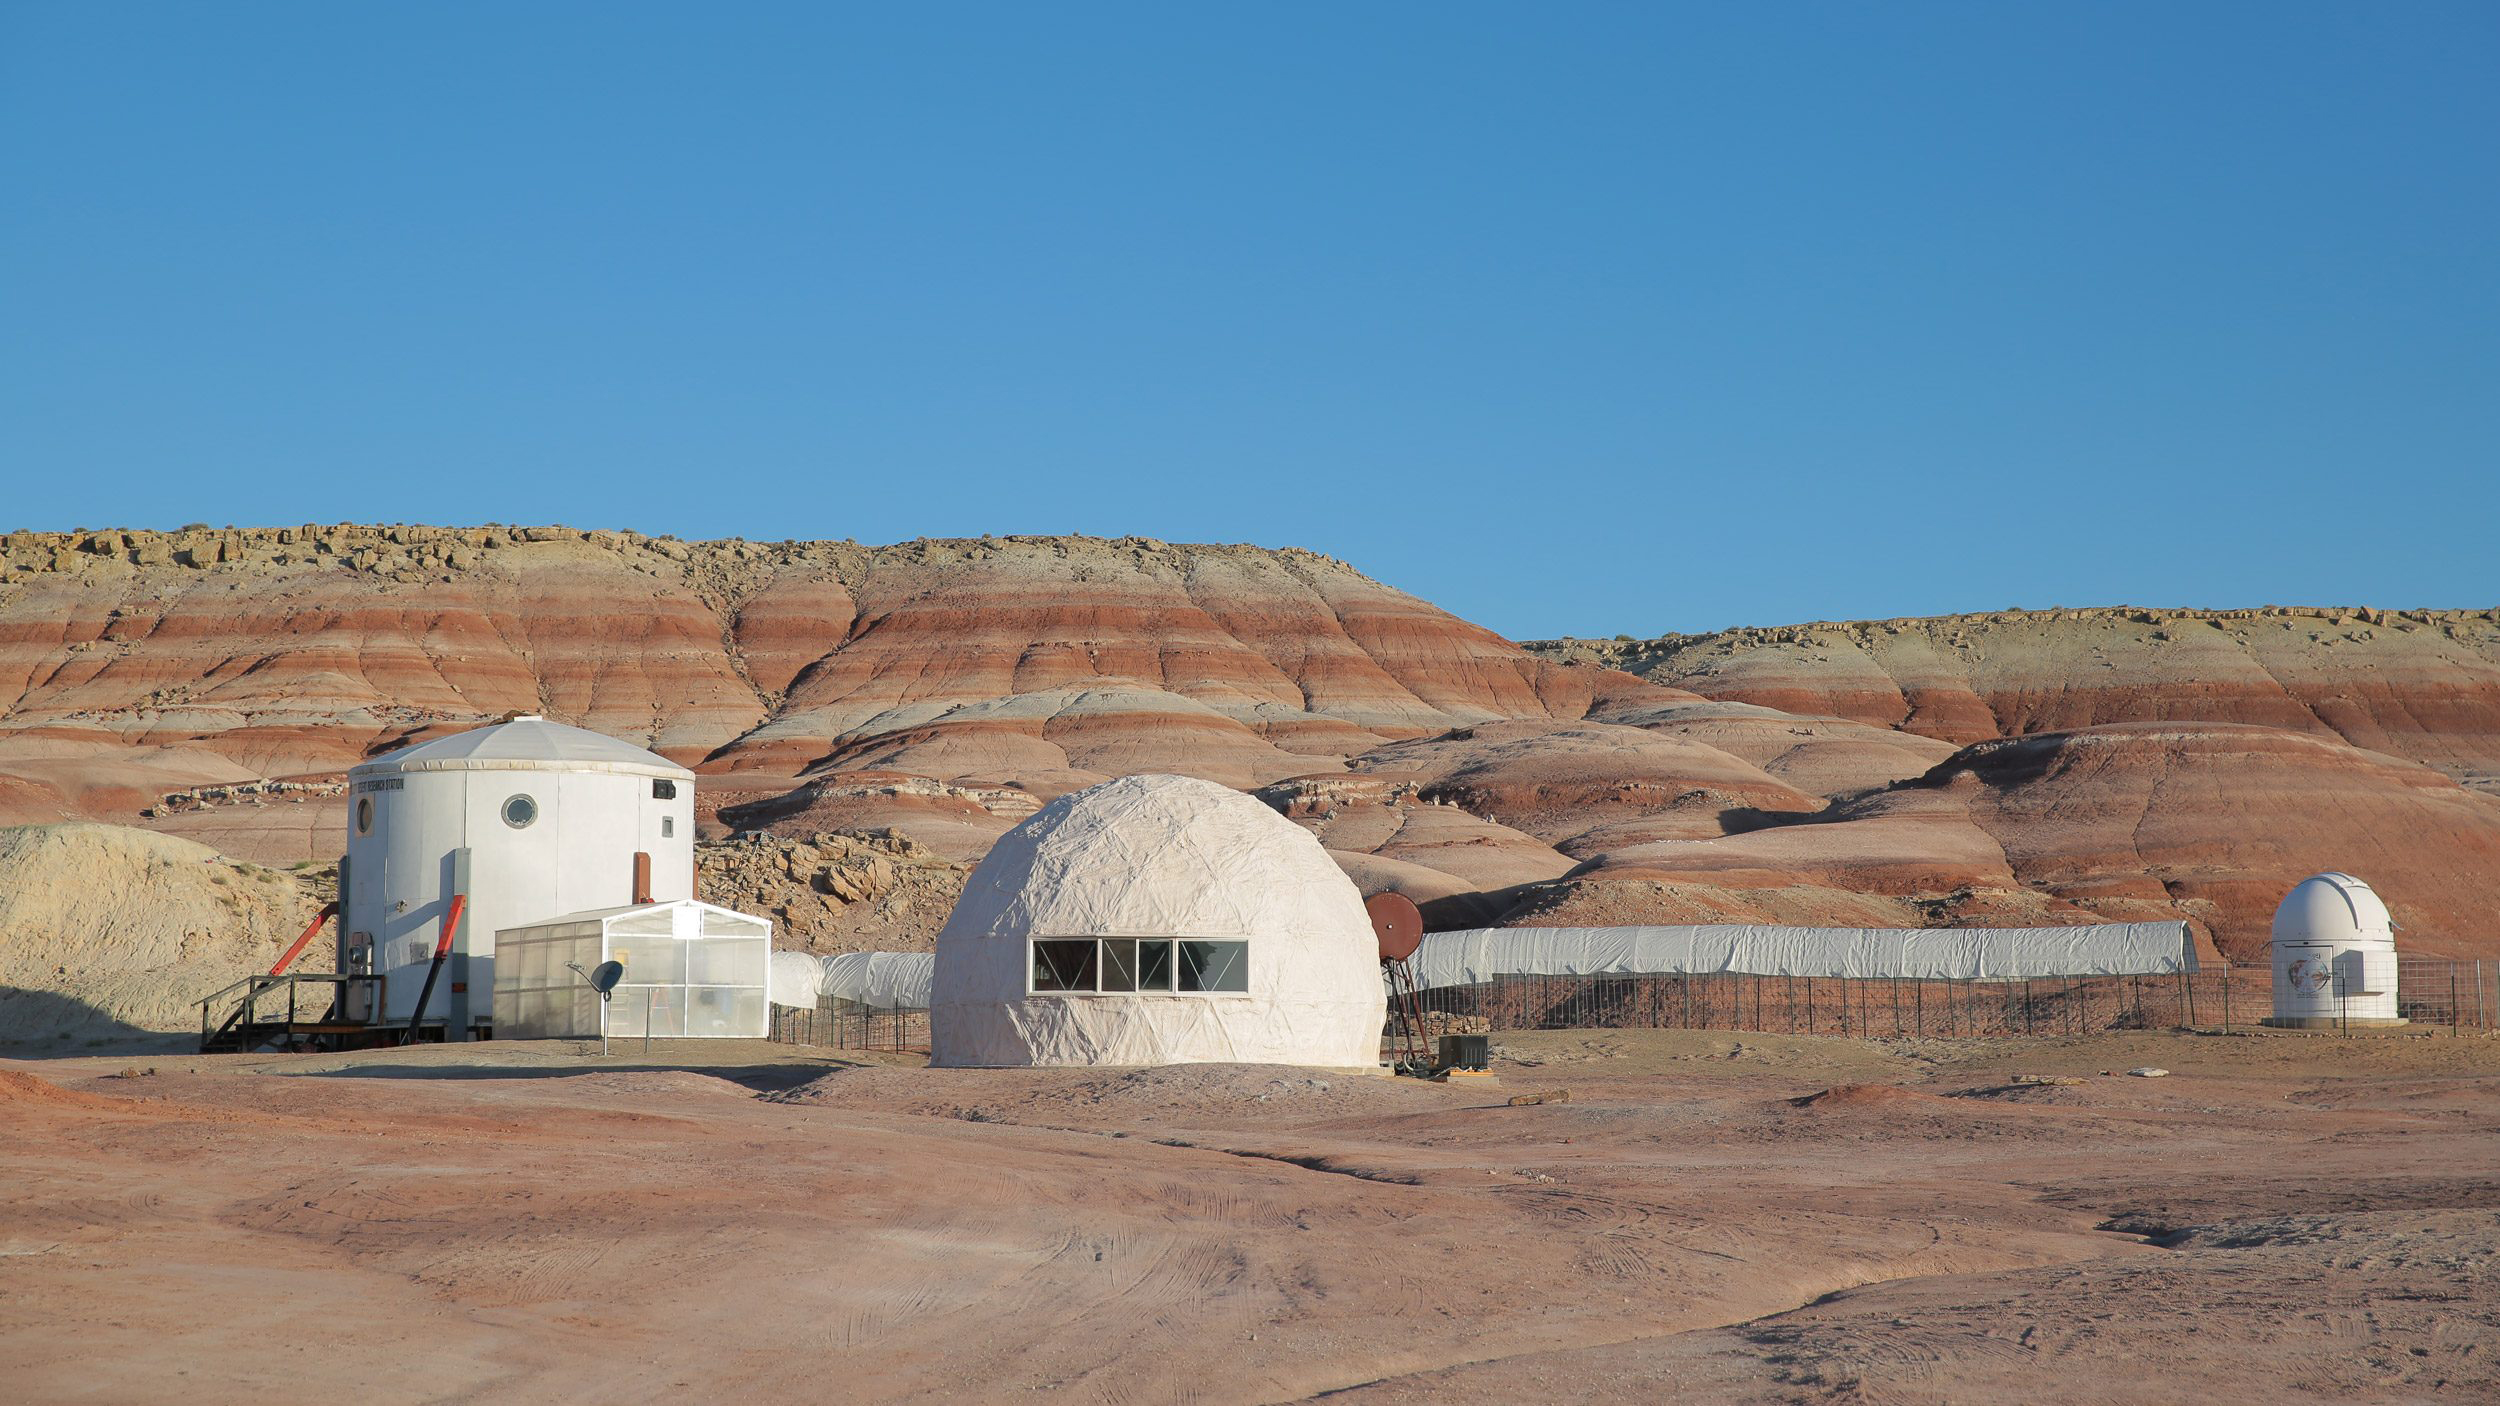 Image: An IKEA team spent three days at the Mars Desert Research Station in Utah